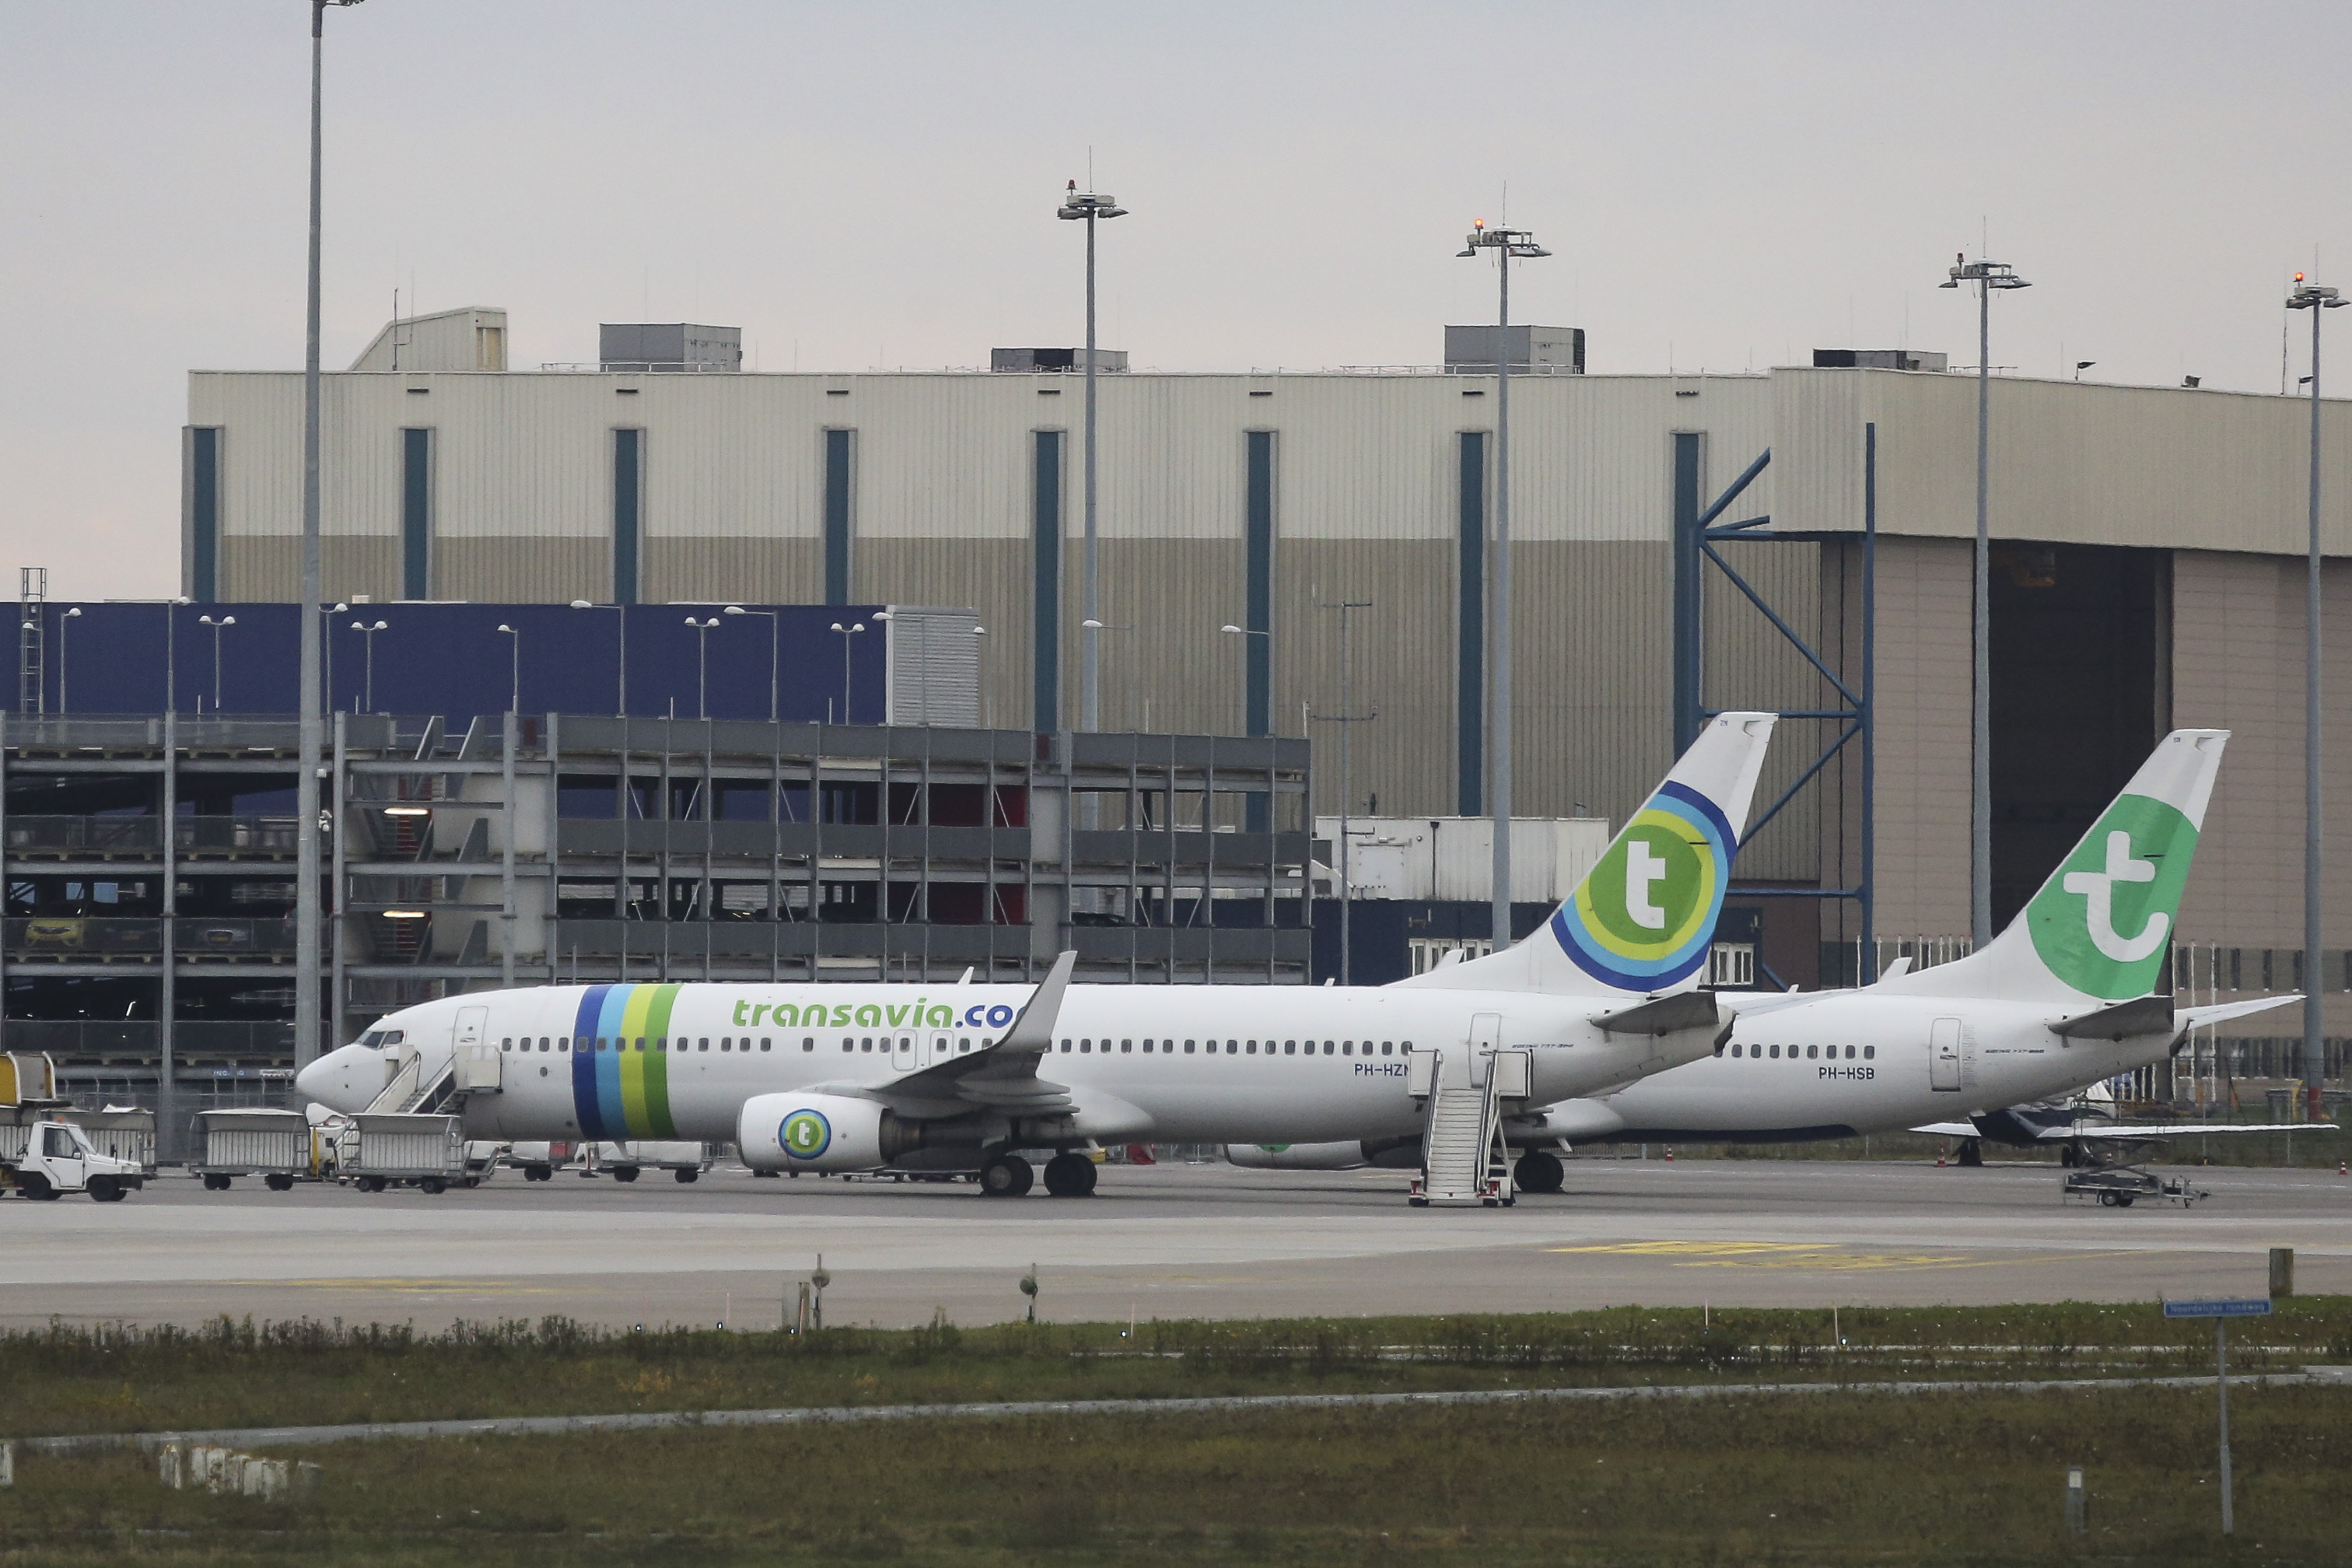 Transavia Airlines flight makes emergency landing after passenger's farting sparks fight